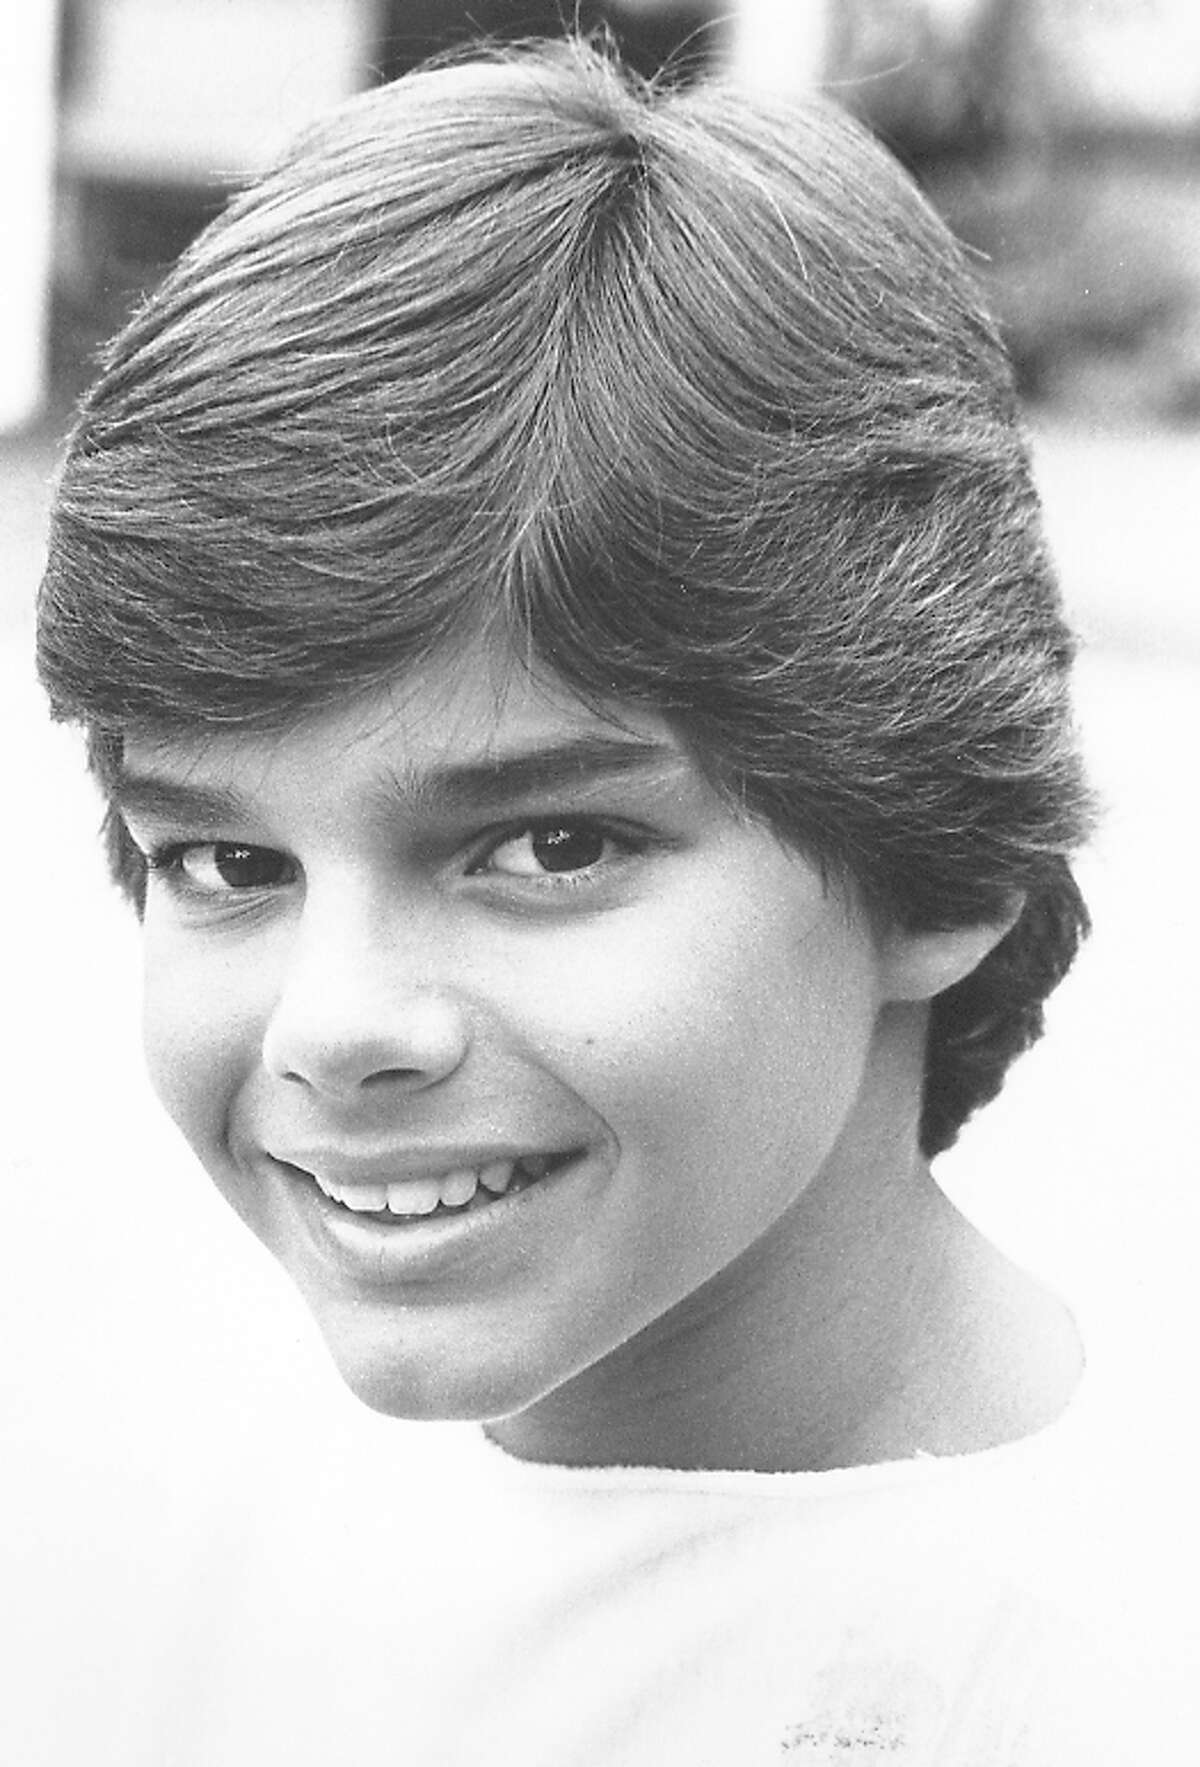 Ricky Martin has been entertaining audiences since he joined the Latin boy band Menudo in 1984.